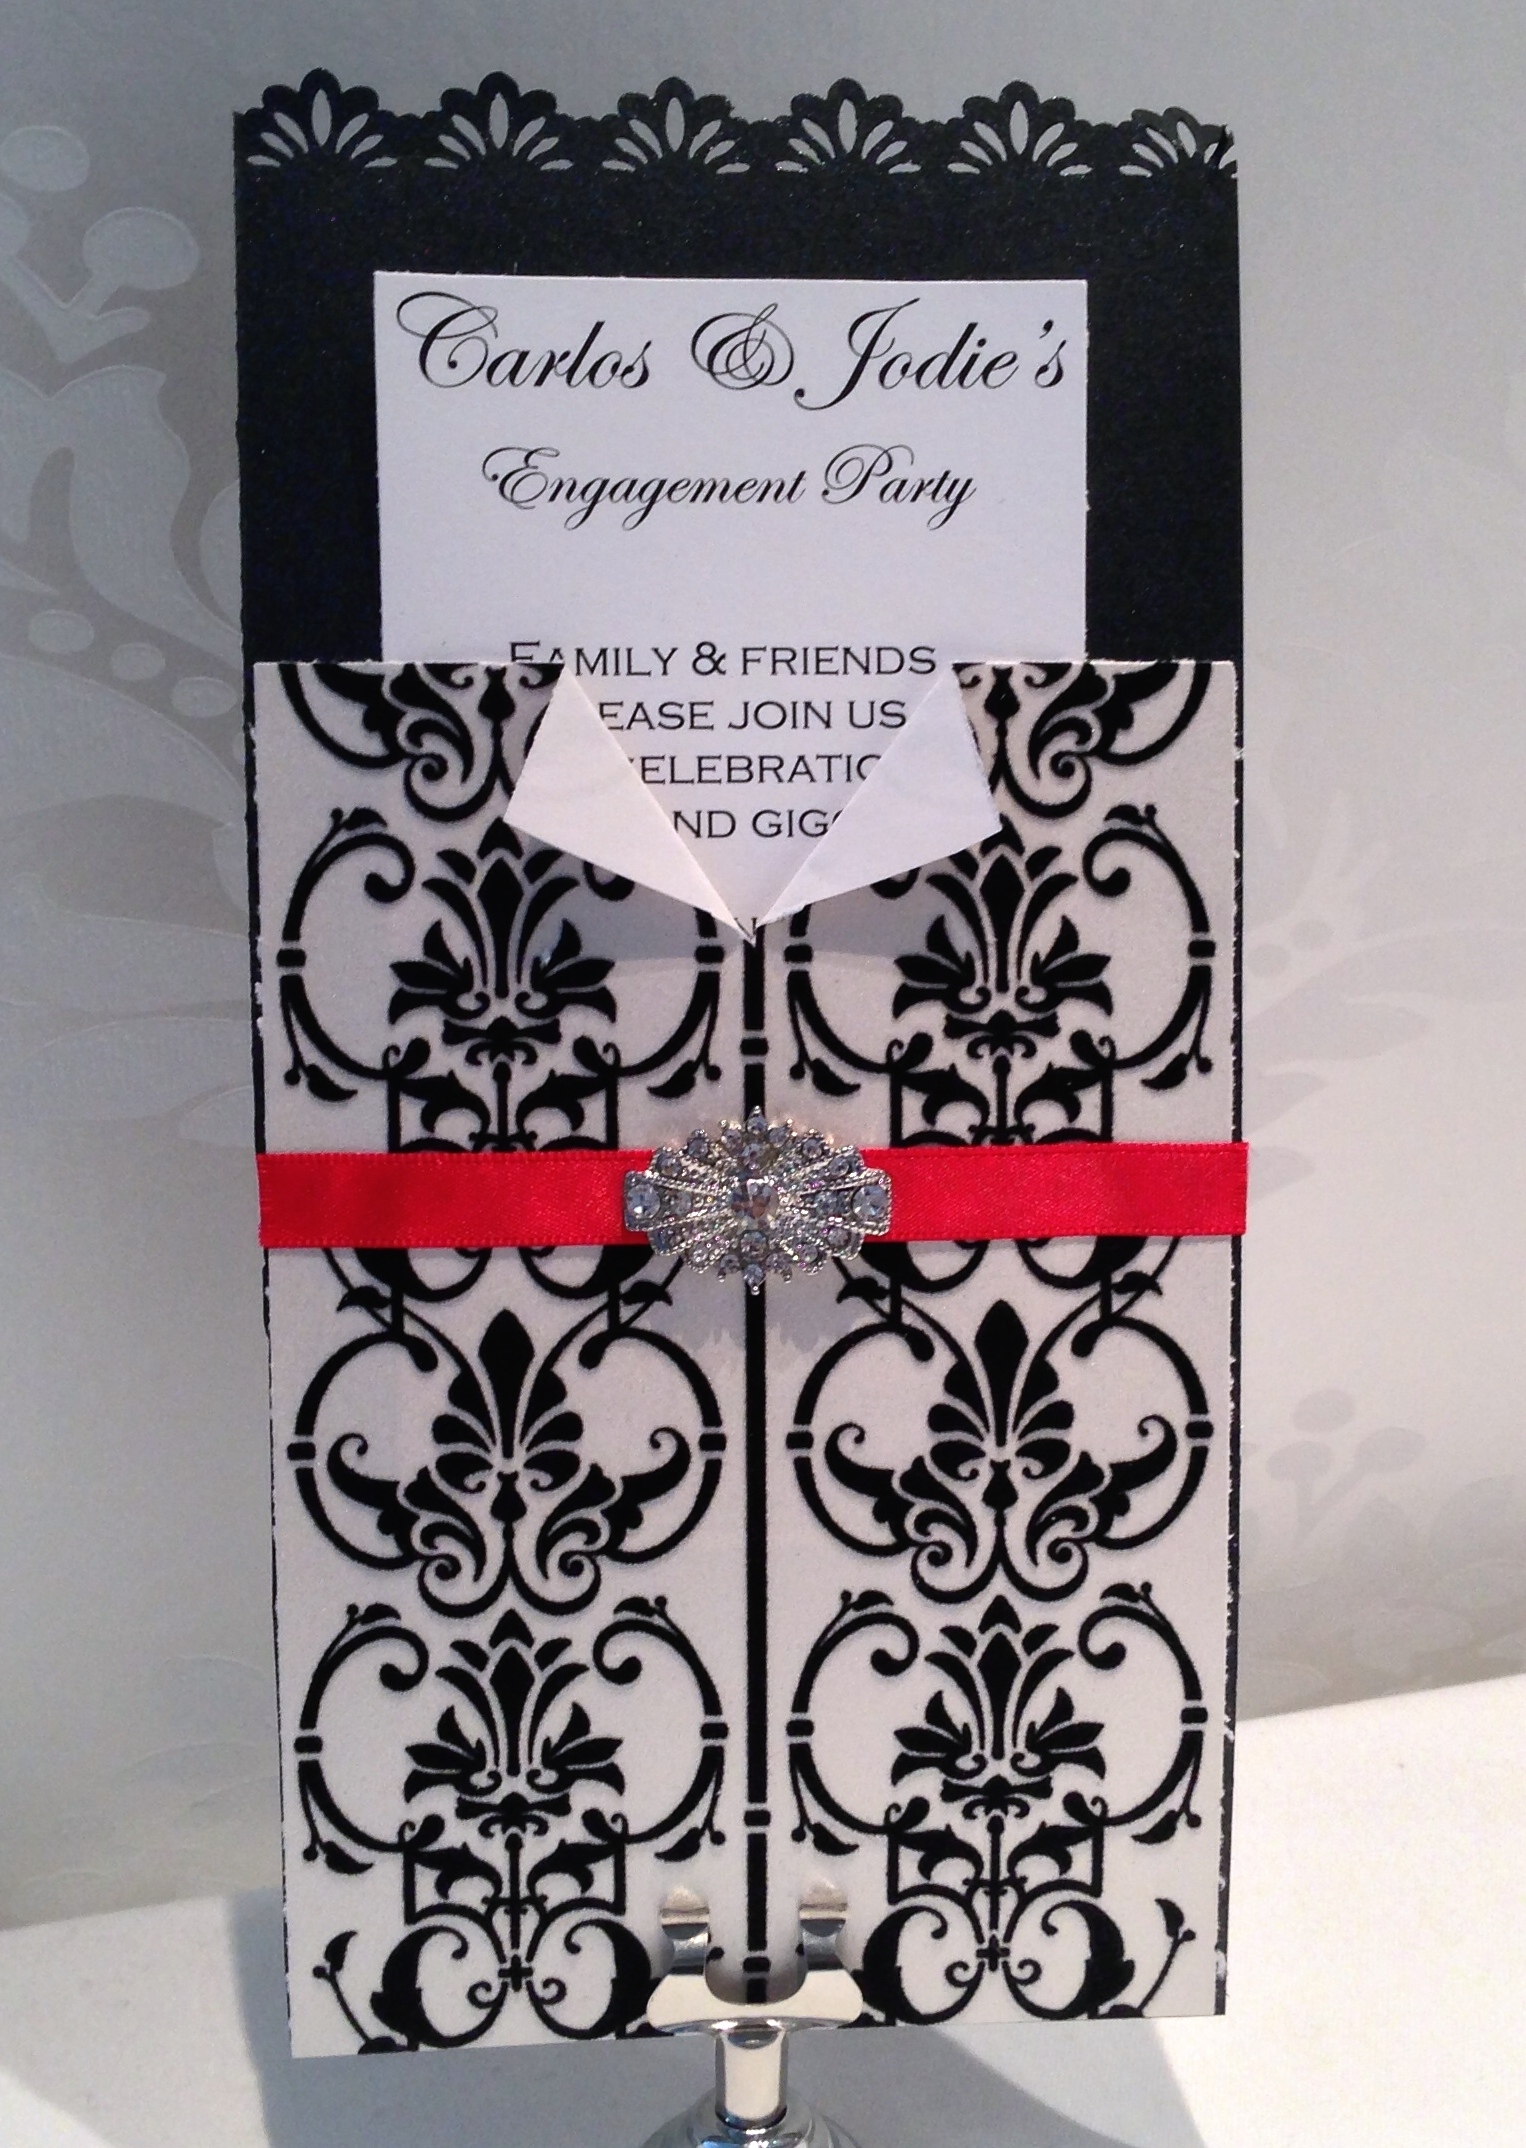 white damask ribbon buckle invitation black and white damask buckle red ribbon invitation